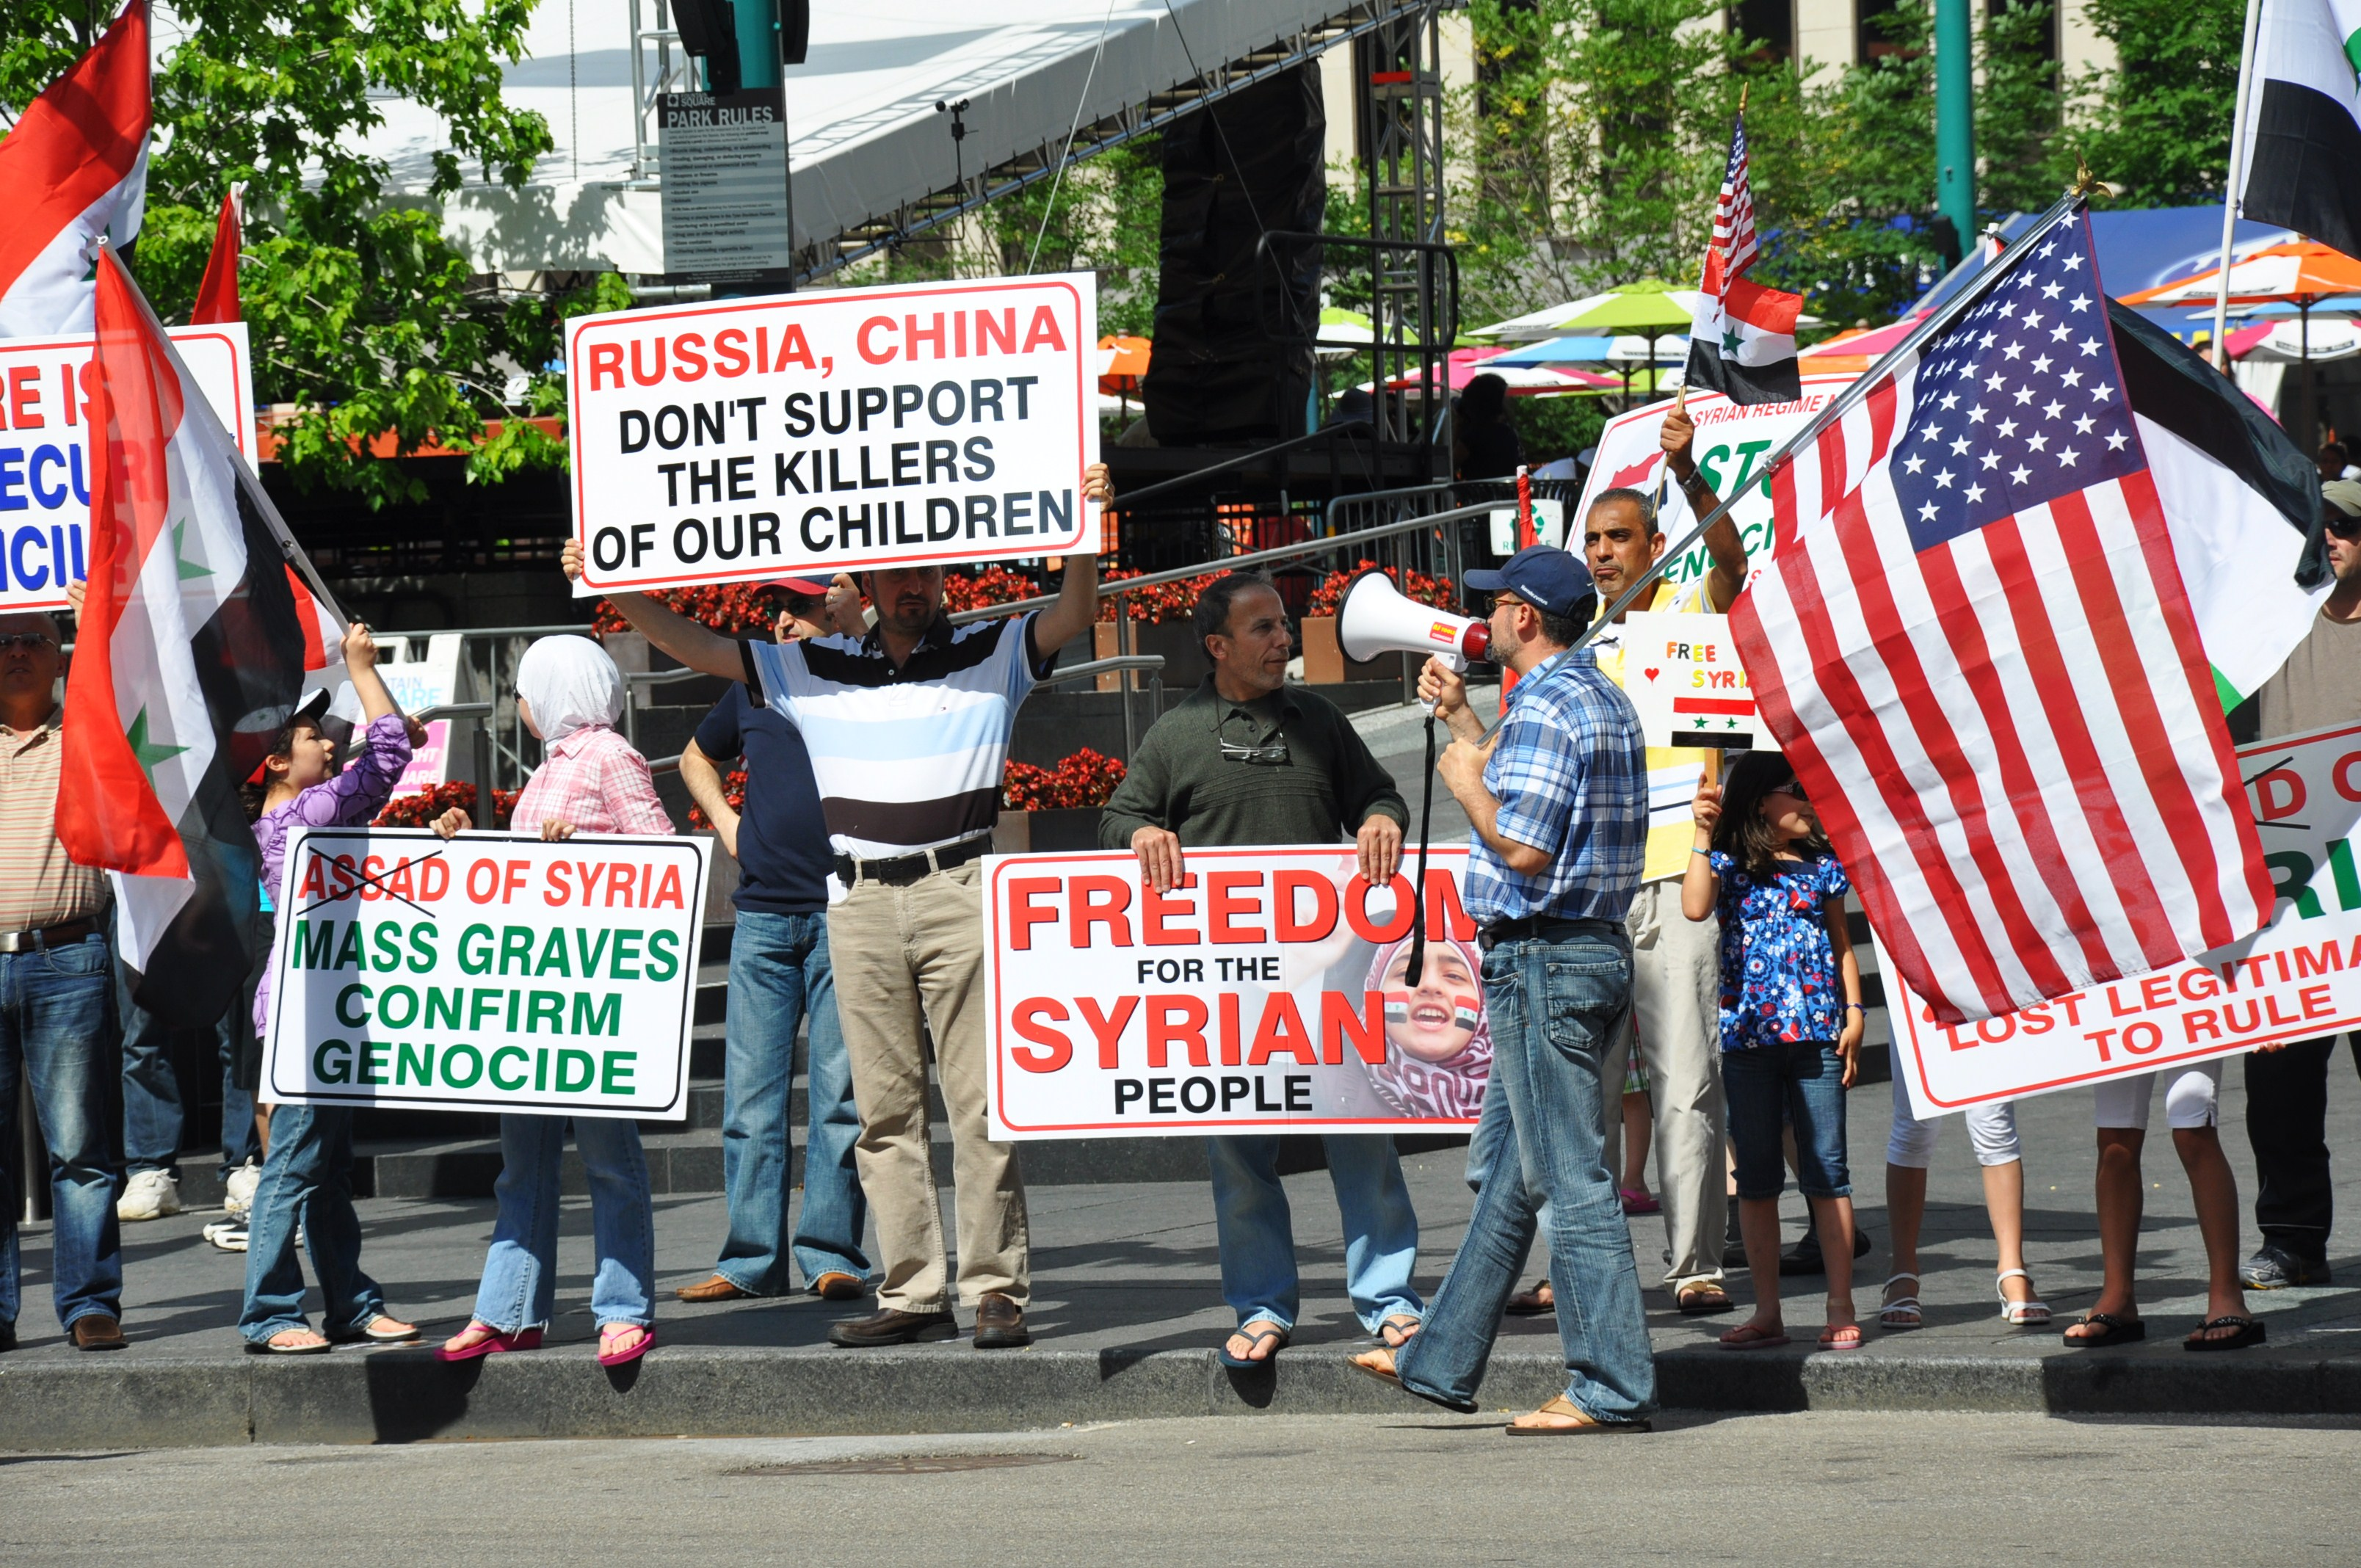 Photography – Freedom – 2011 Cincinnati, OR – Free Syria Demonstrators